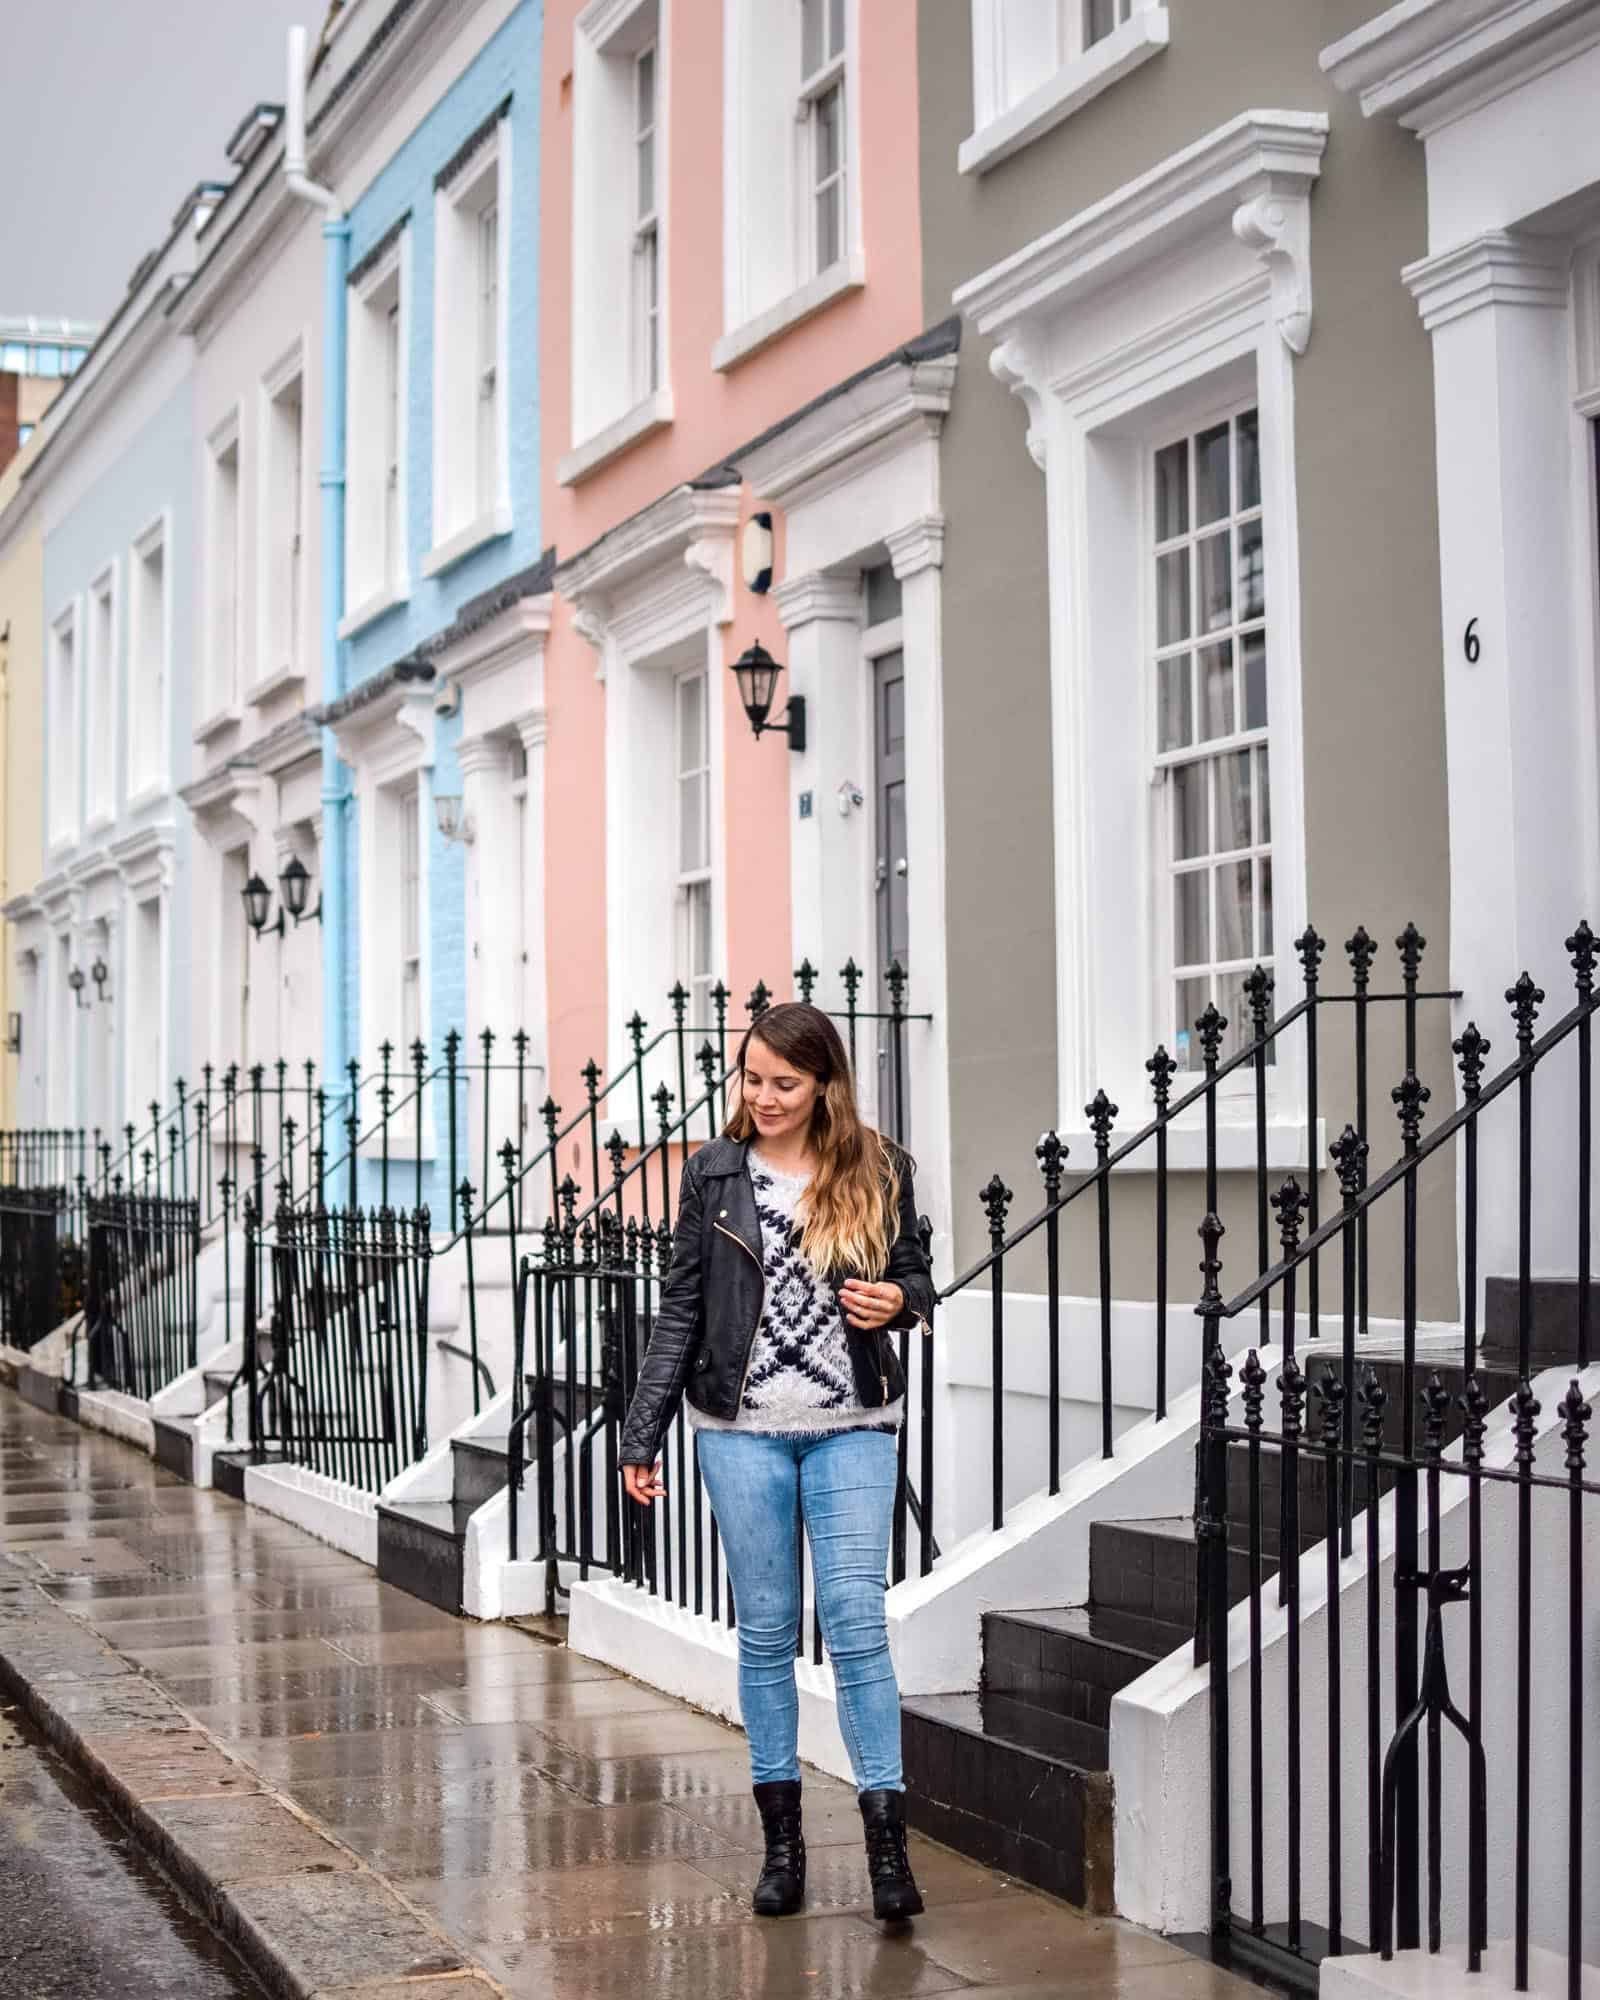 Calcott Street Notting Hill on a rainy day